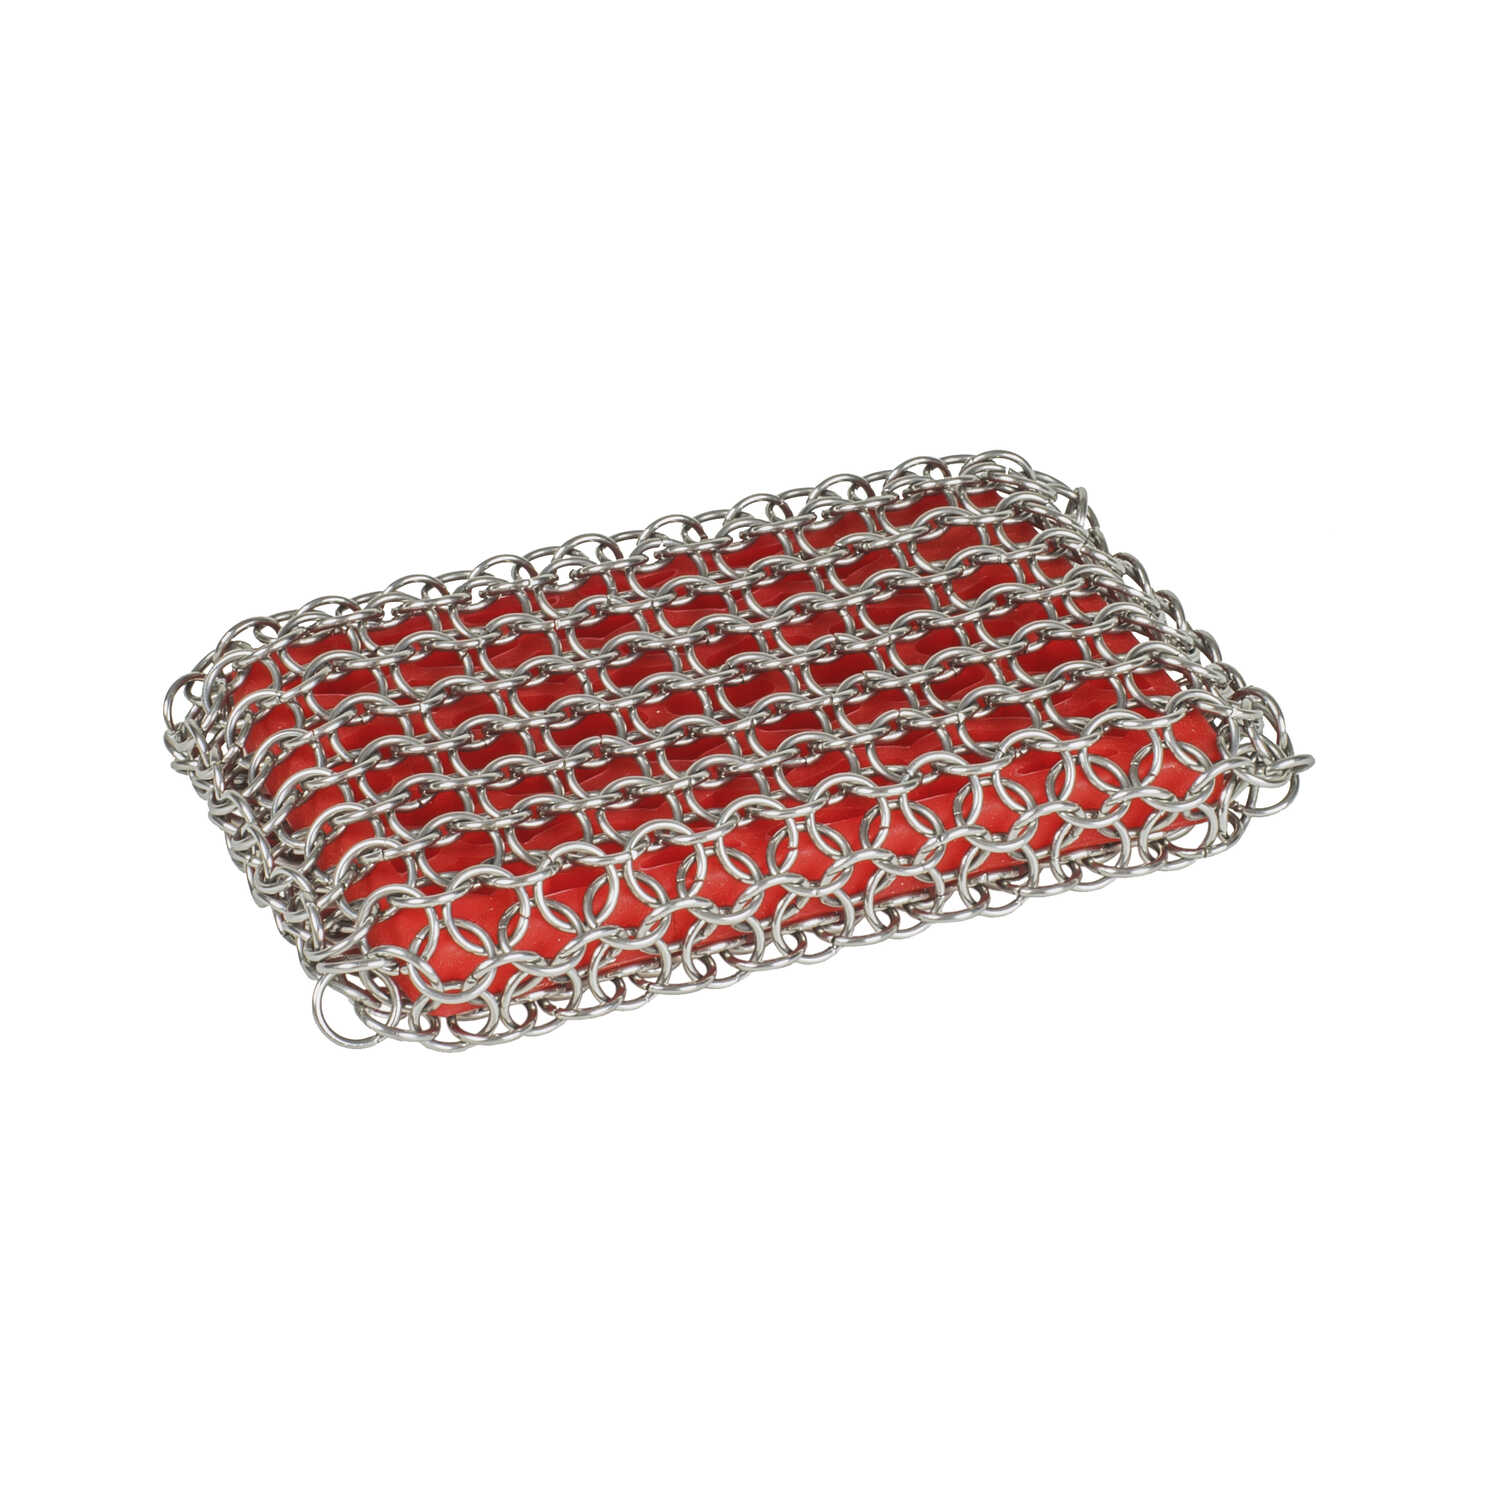 Lodge  Chainmail  Heavy Duty  For Cast Iron Scrubbing Pad  8.71 in. L 1 pk